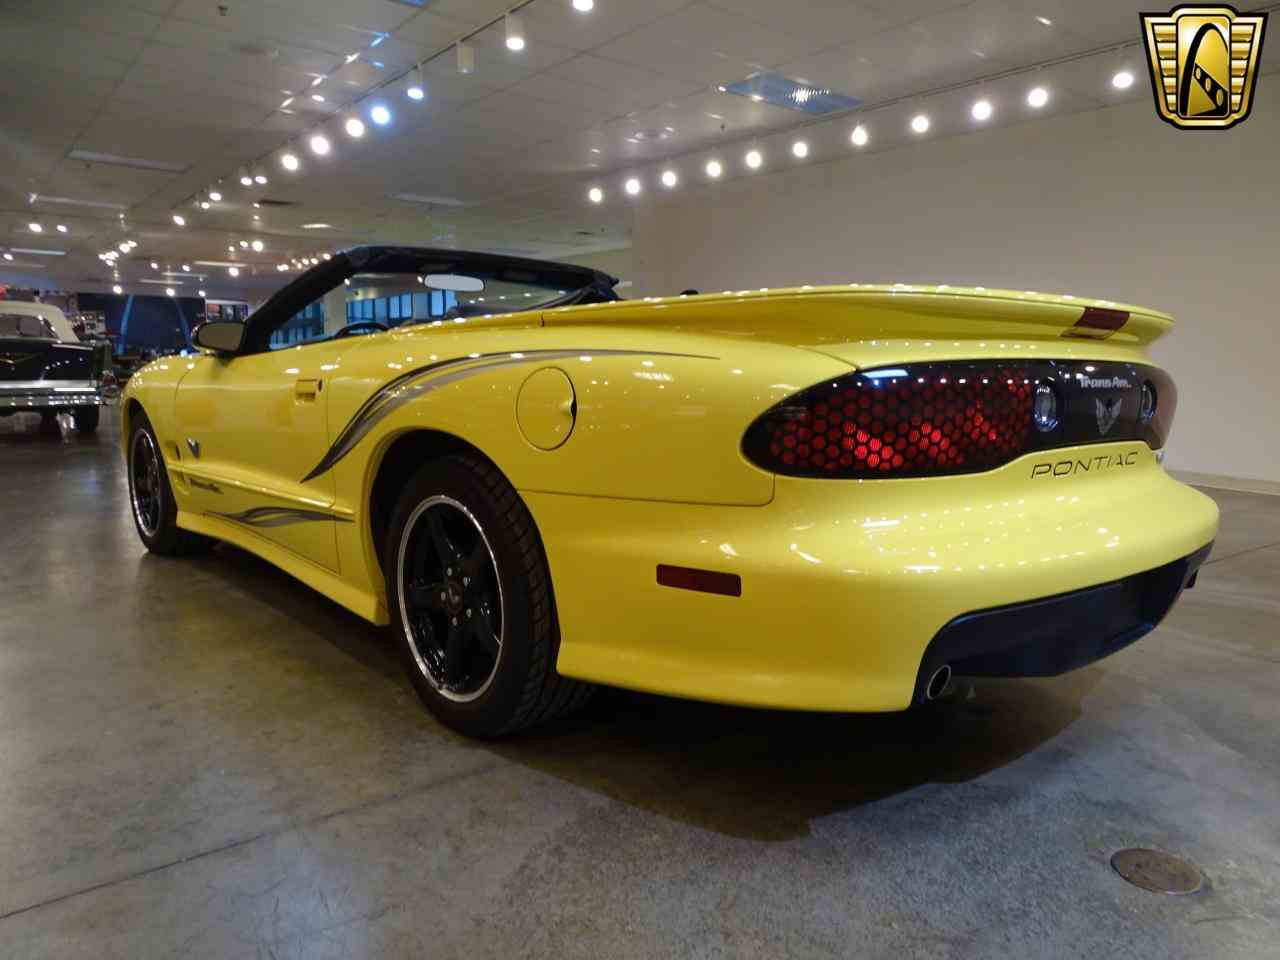 Large Picture of '02 Pontiac Firebird located in Illinois - $32,995.00 Offered by Gateway Classic Cars - St. Louis - KE64